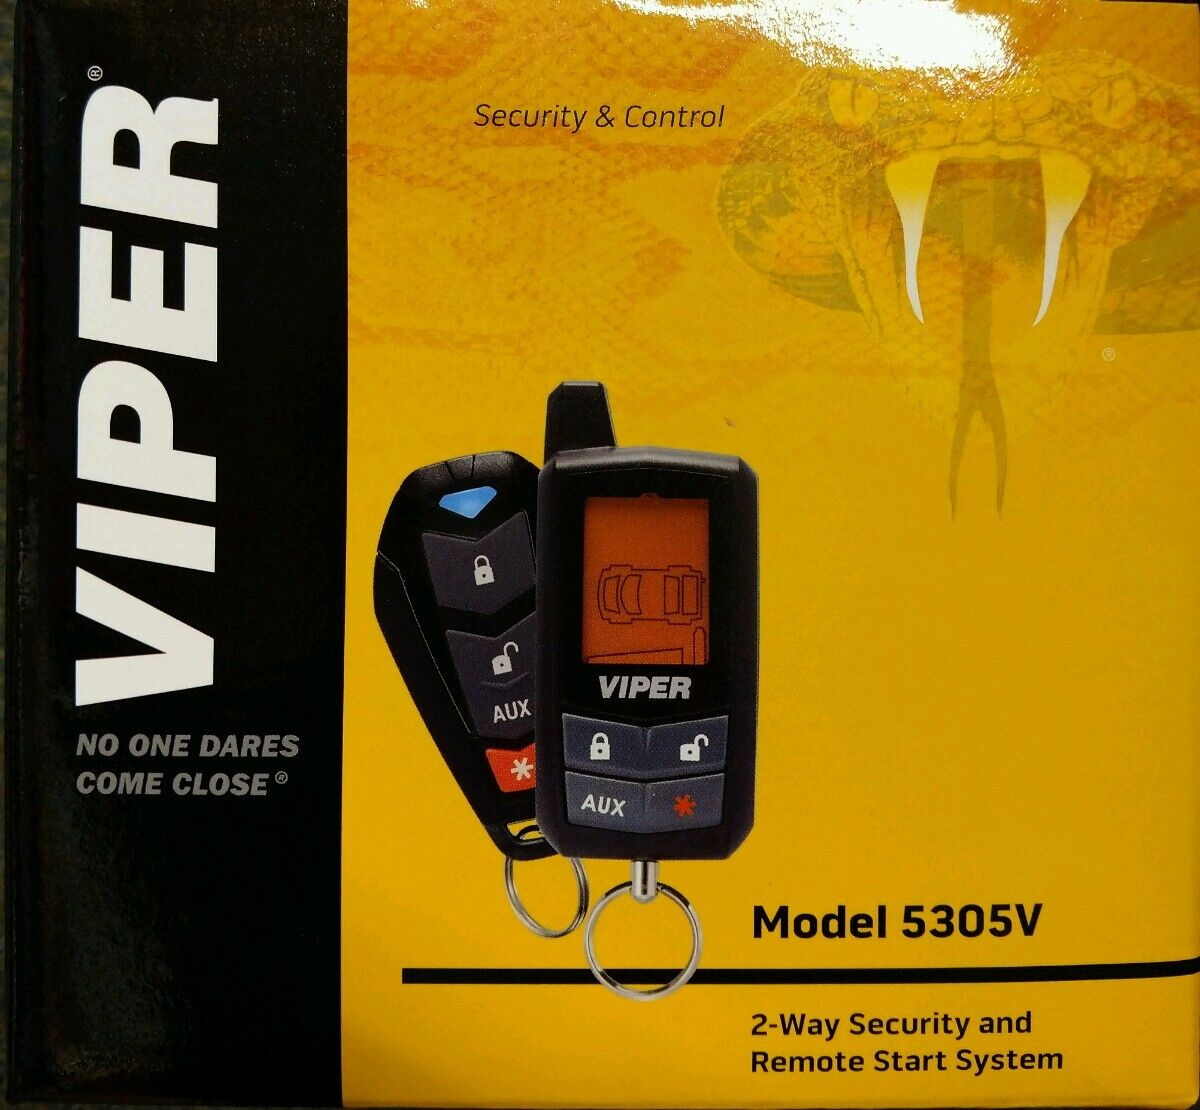 viper 5305v car alarm home electrical wiring diagrams 4 button 2 way security remote start